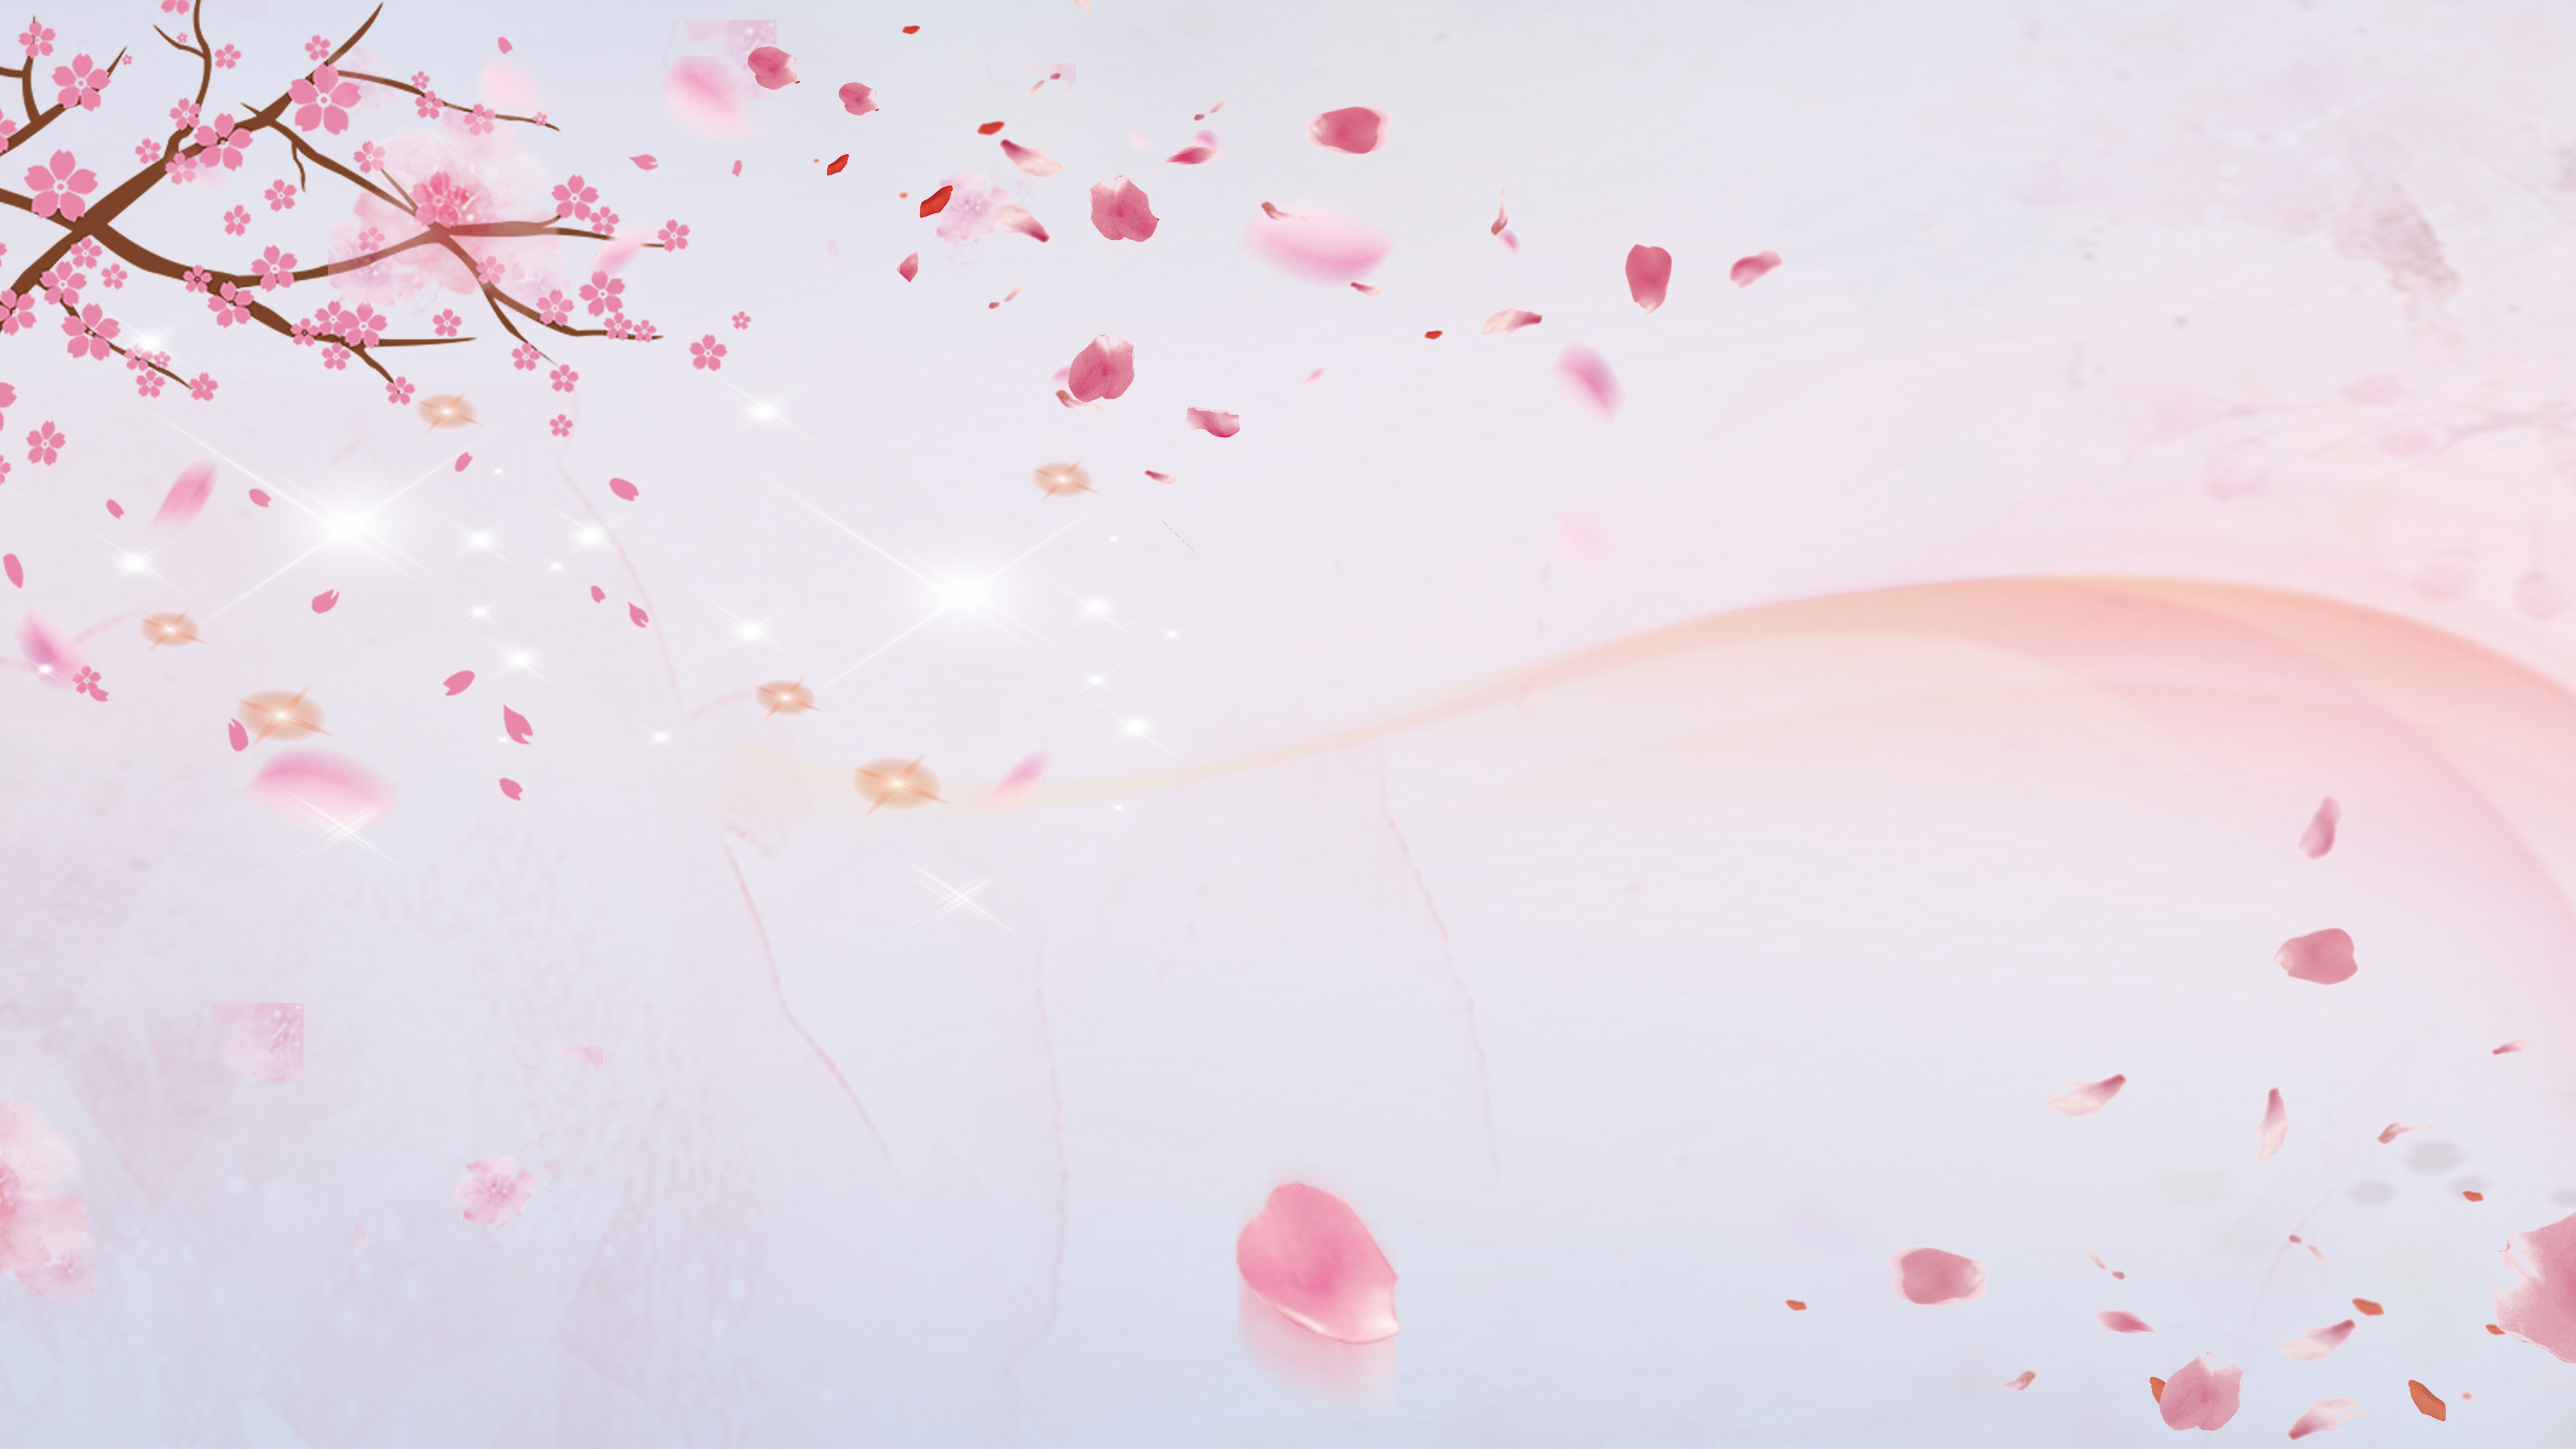 peach flower background photos vectors and psd files for free download pngtree peach flower background photos vectors